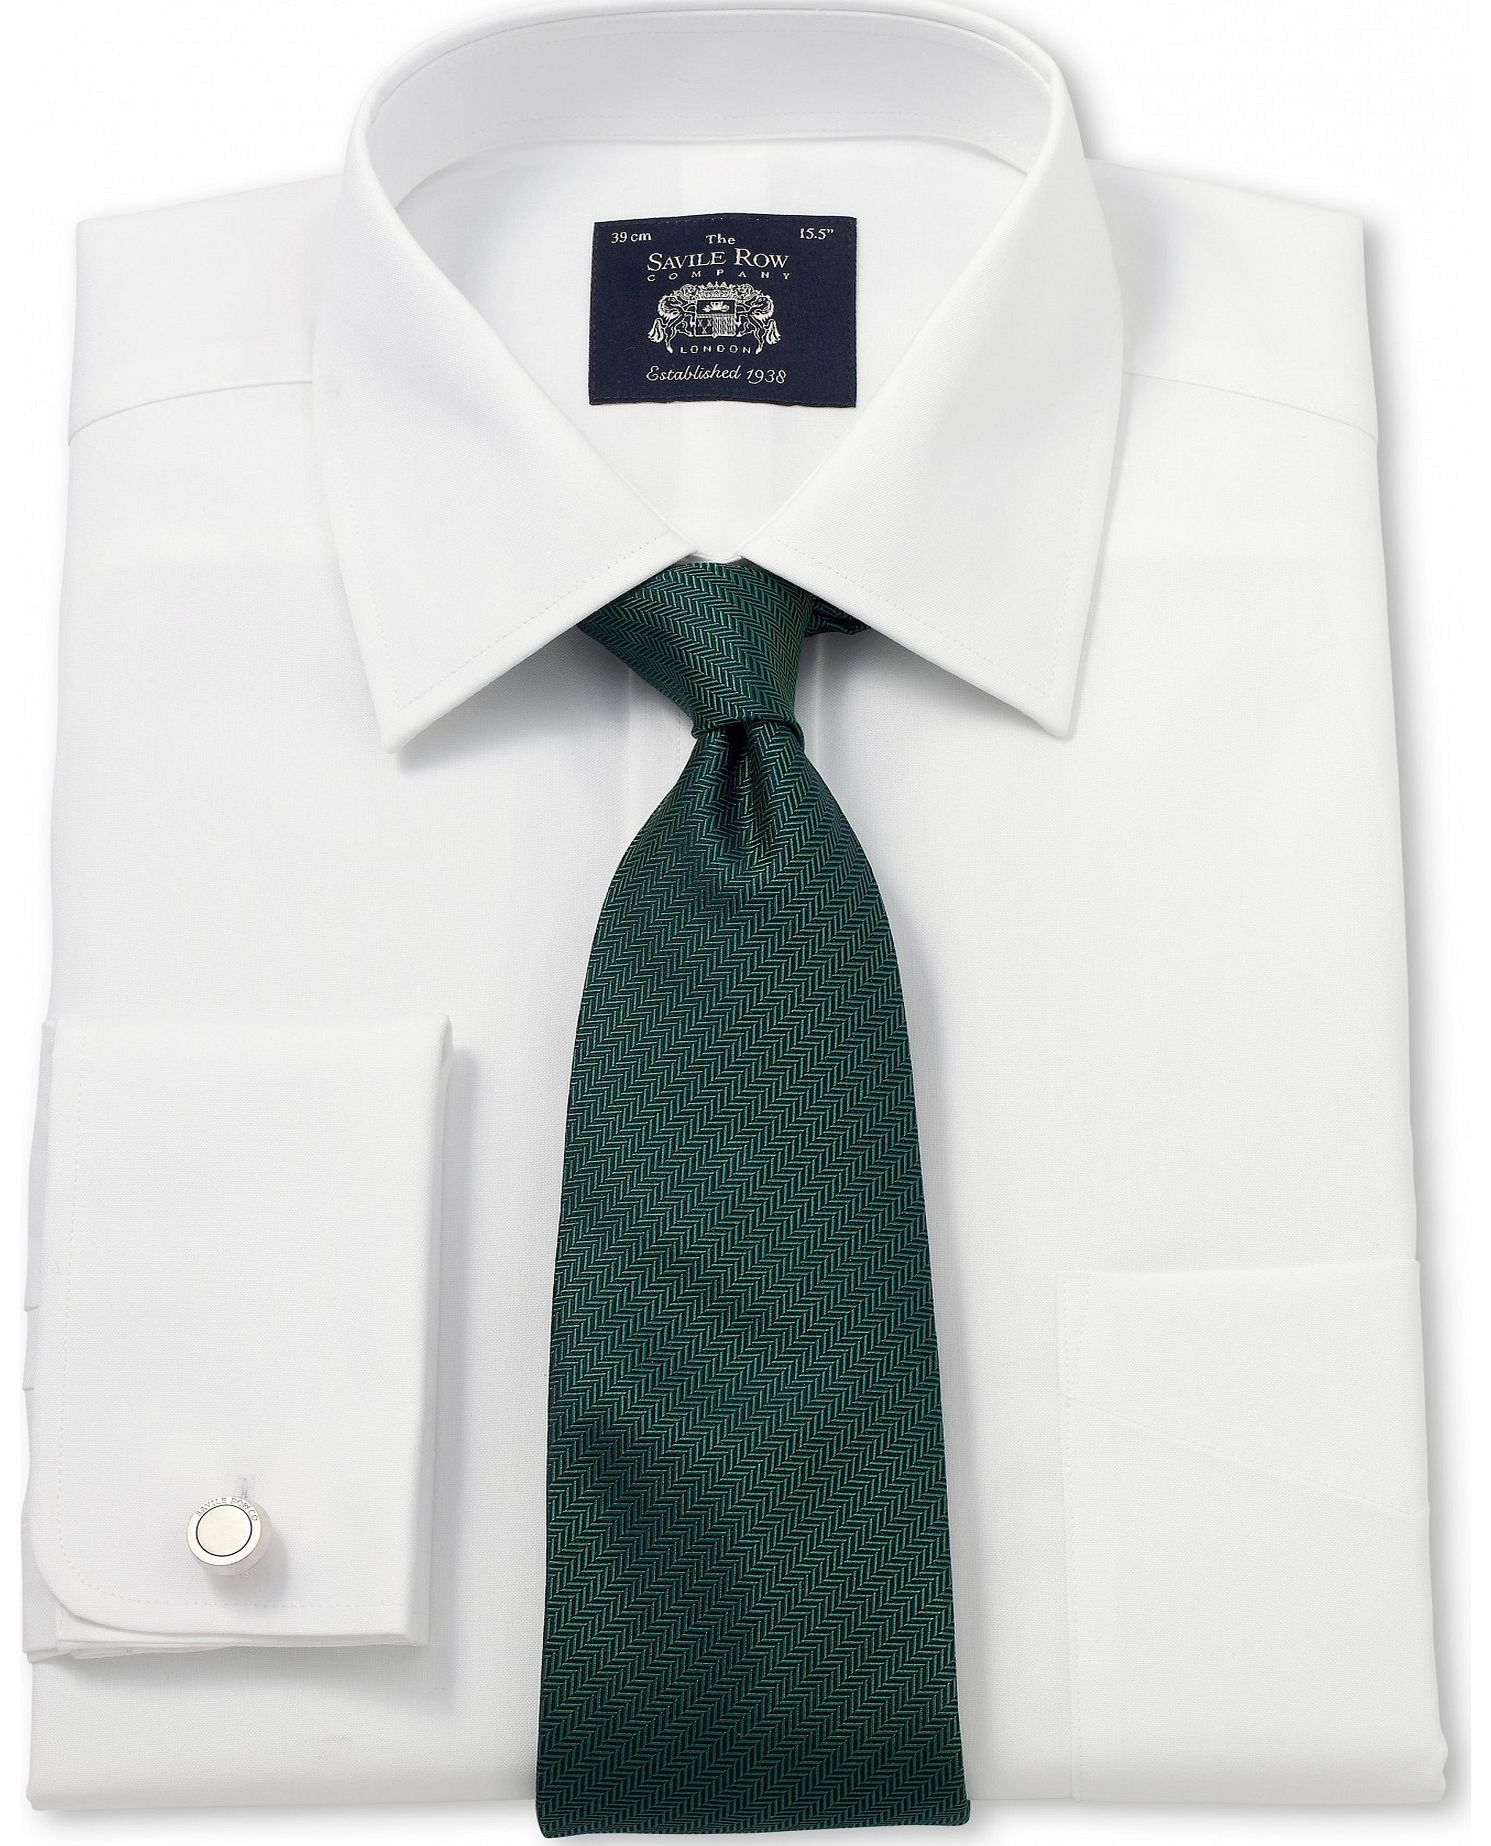 Savile Row Company White Non-Iron Classic Fit Shirt 15 1/2`` product image